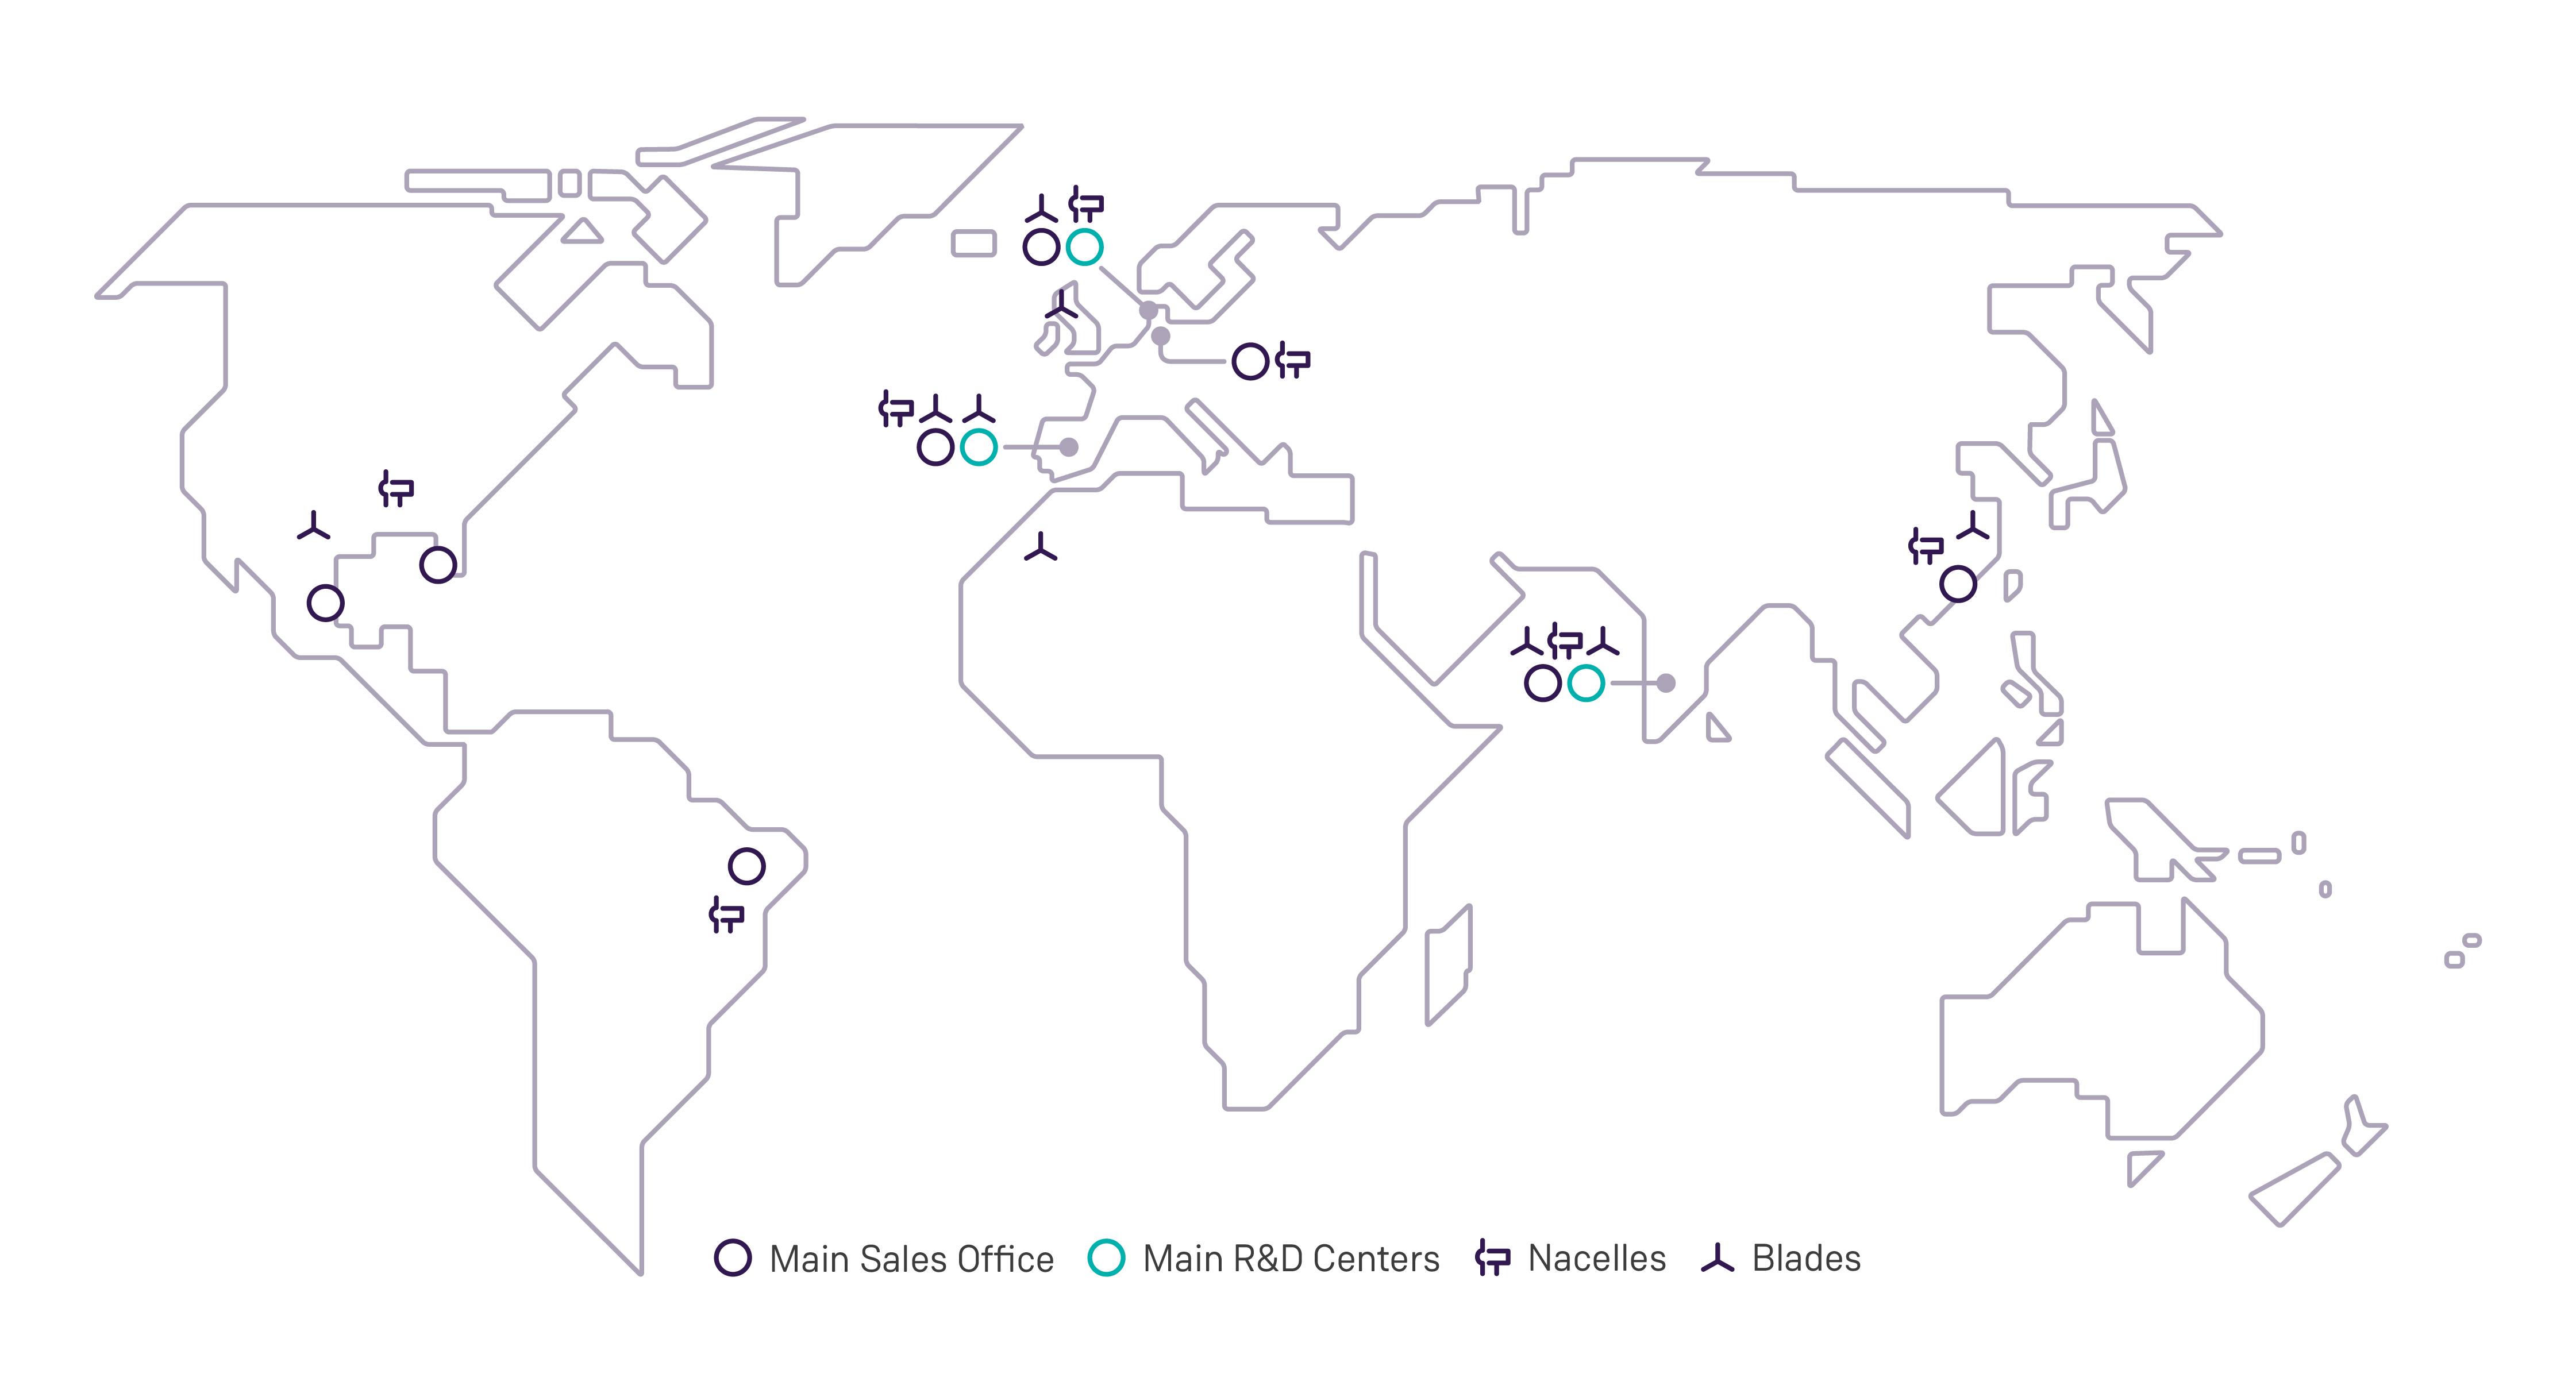 Worldwide overview of Siemens Gamesa office and manufacturing locations